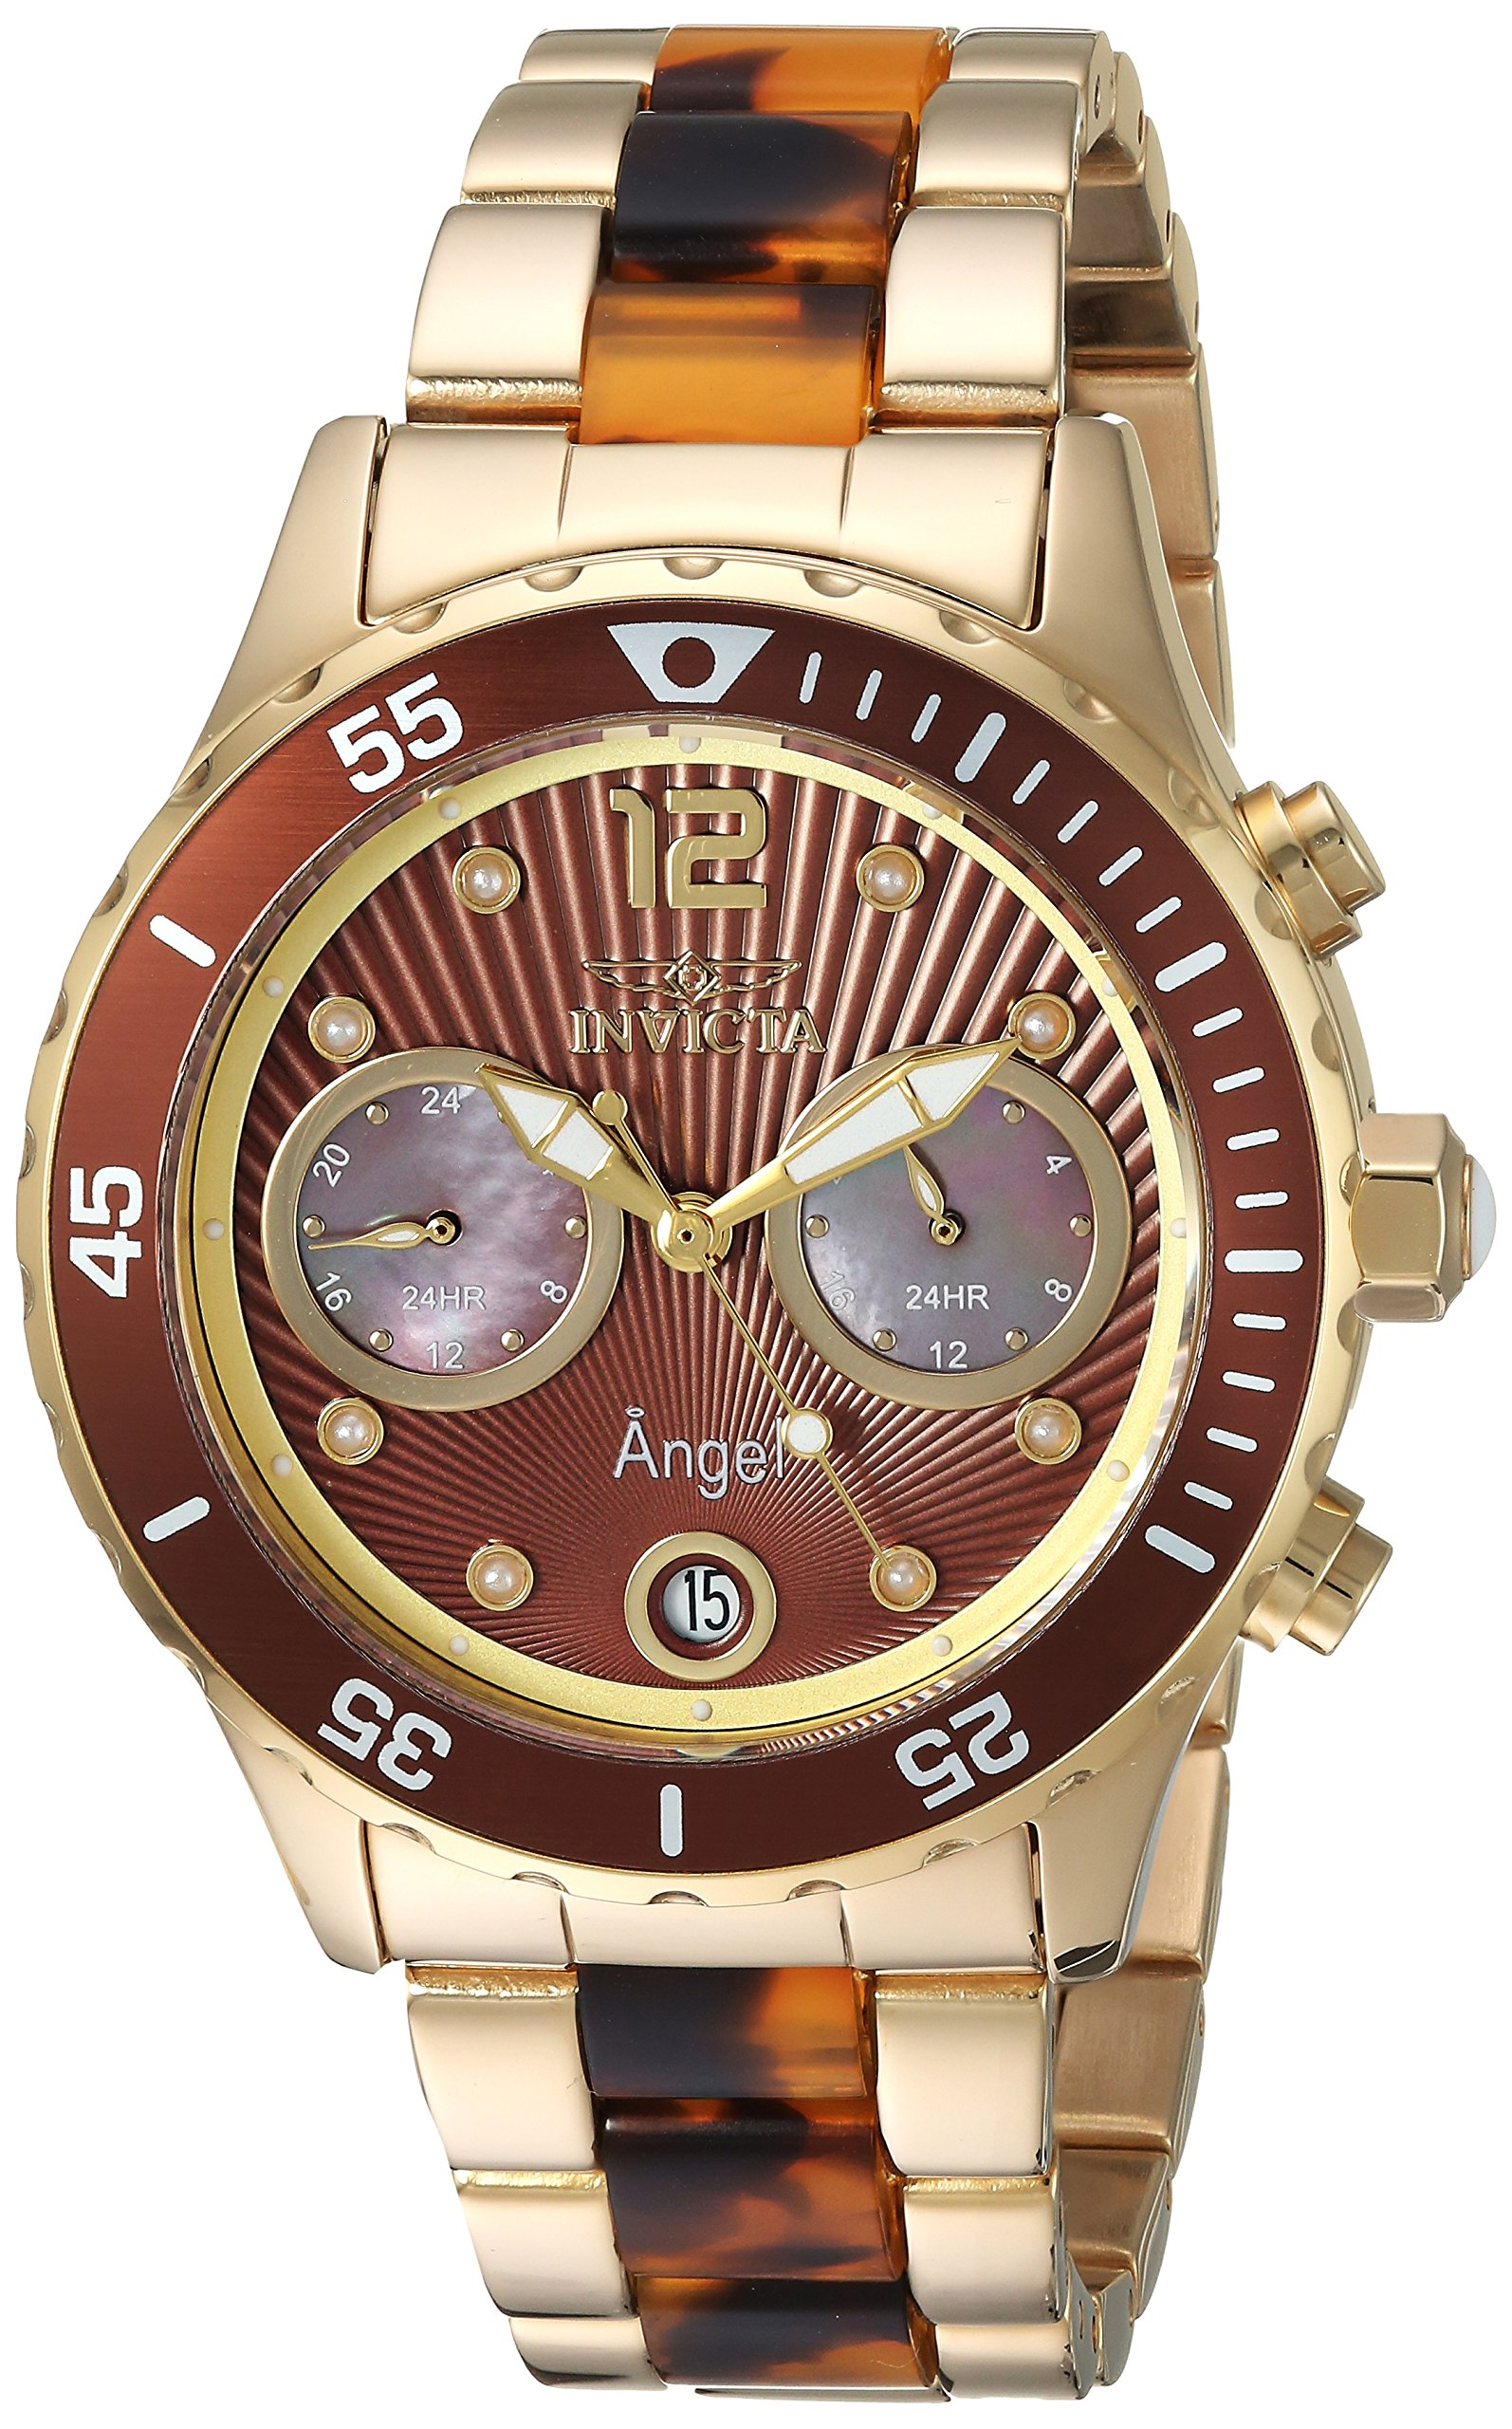 ویکالا · خرید  اصل اورجینال · خرید از آمازون · Invicta Women's 'Angel' Quartz Stainless Steel Casual Watch, Color:Two Tone (Model: 24706) wekala · ویکالا